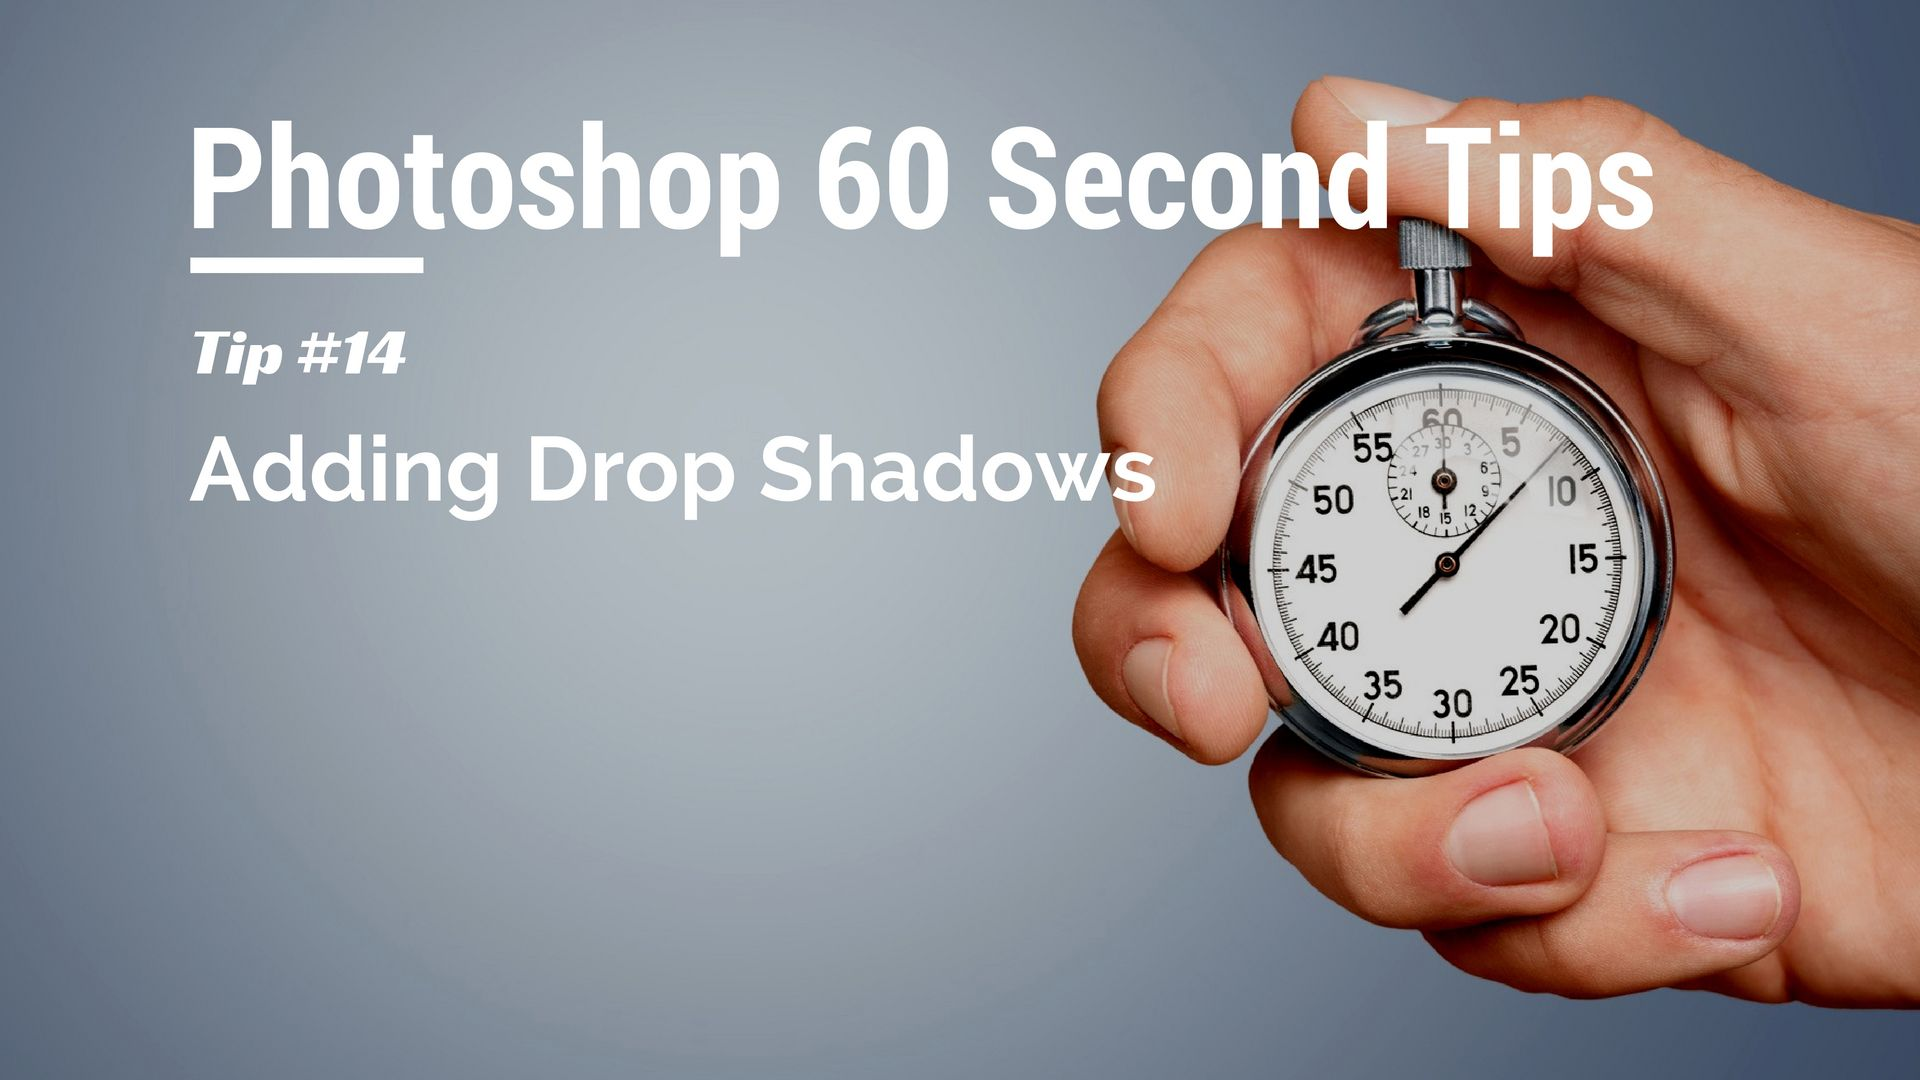 how to smooth edges in photoshop after removing background